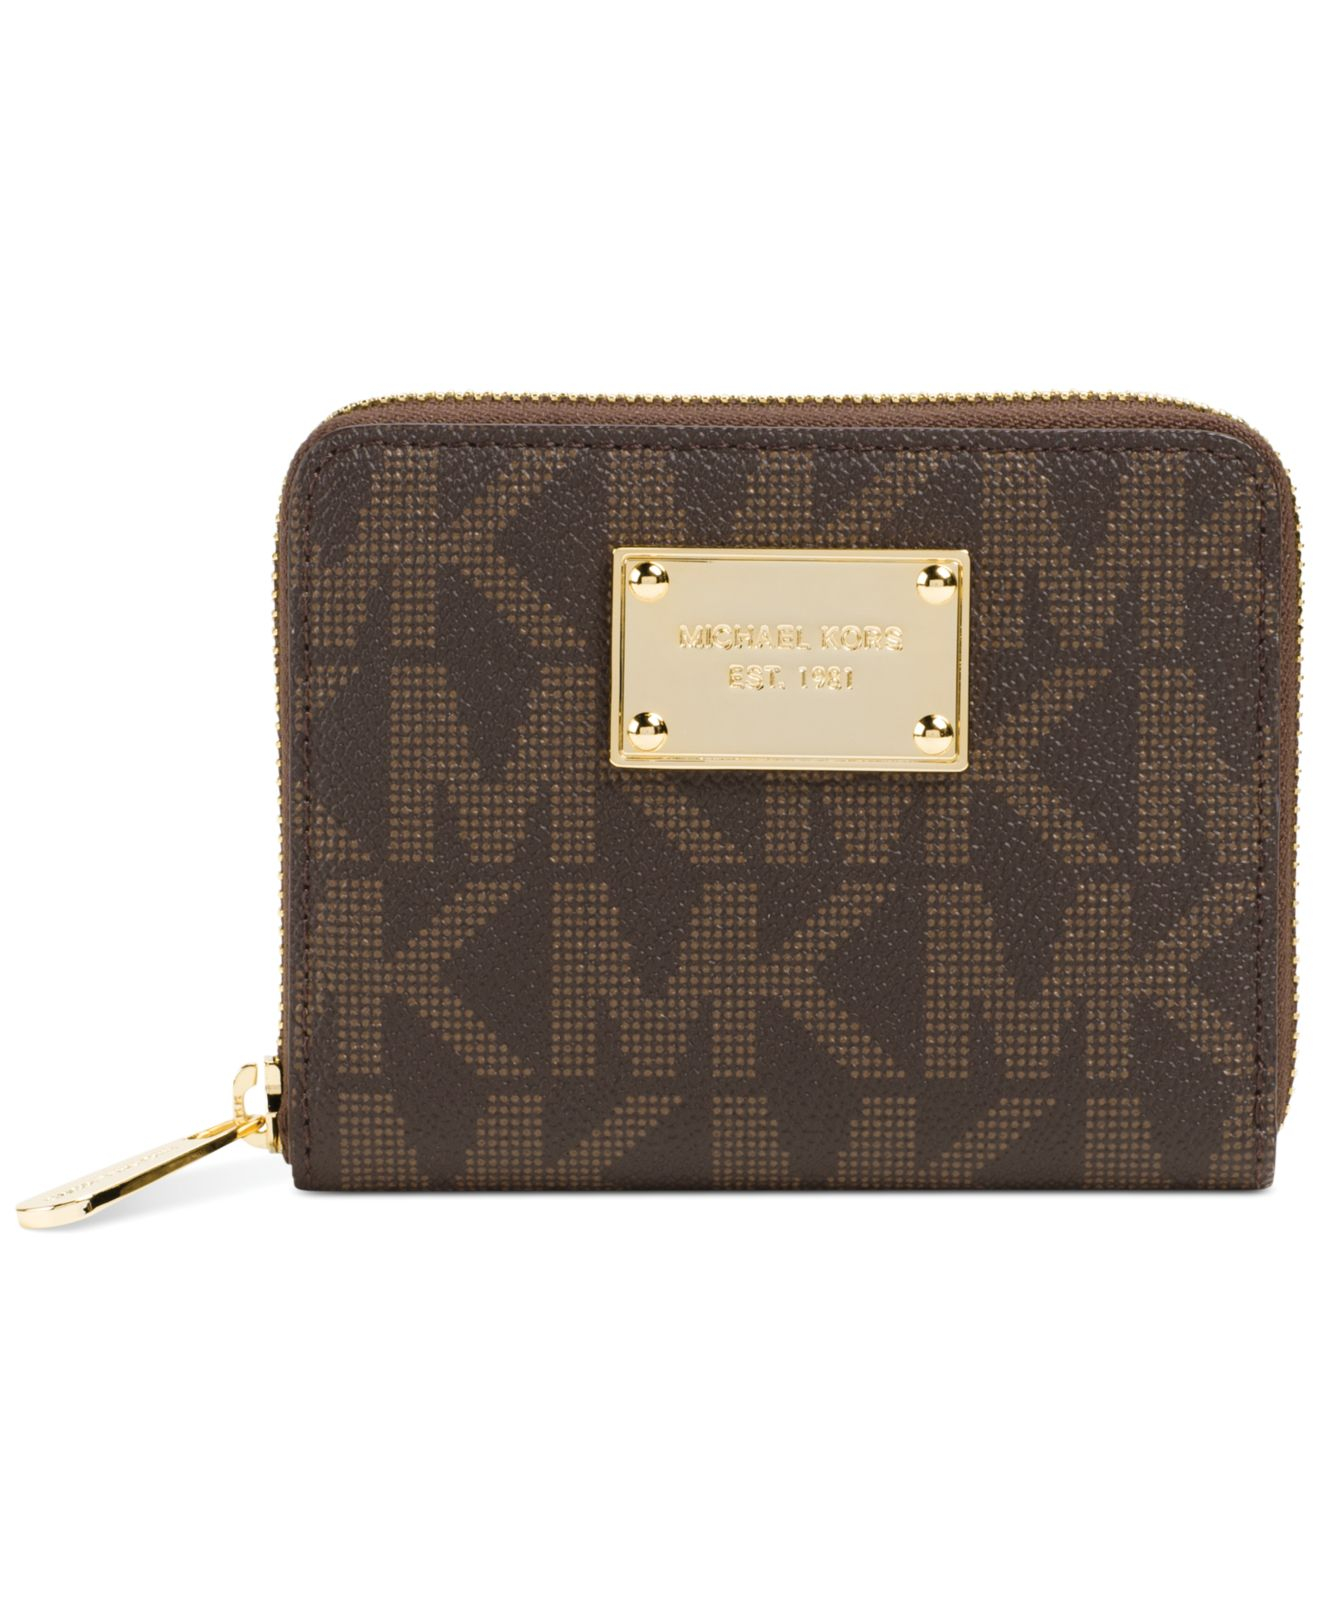 20812732fba7 Lyst - Michael Kors Michael Jet Set Item Medium Zip Around Wallet in ...